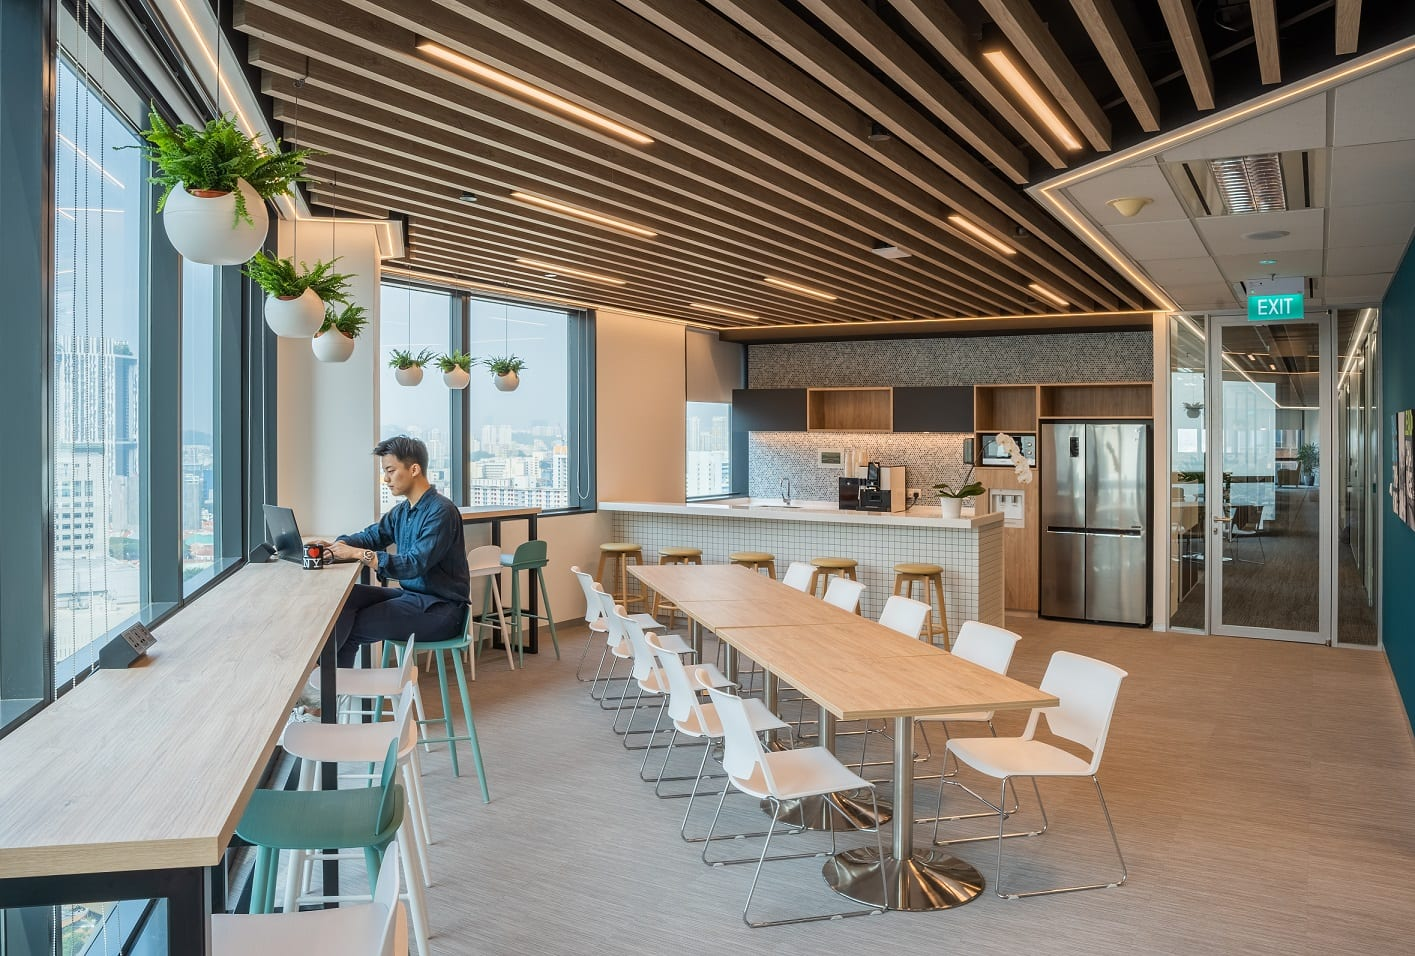 Post-pandemic workplace design should give people control over their environment